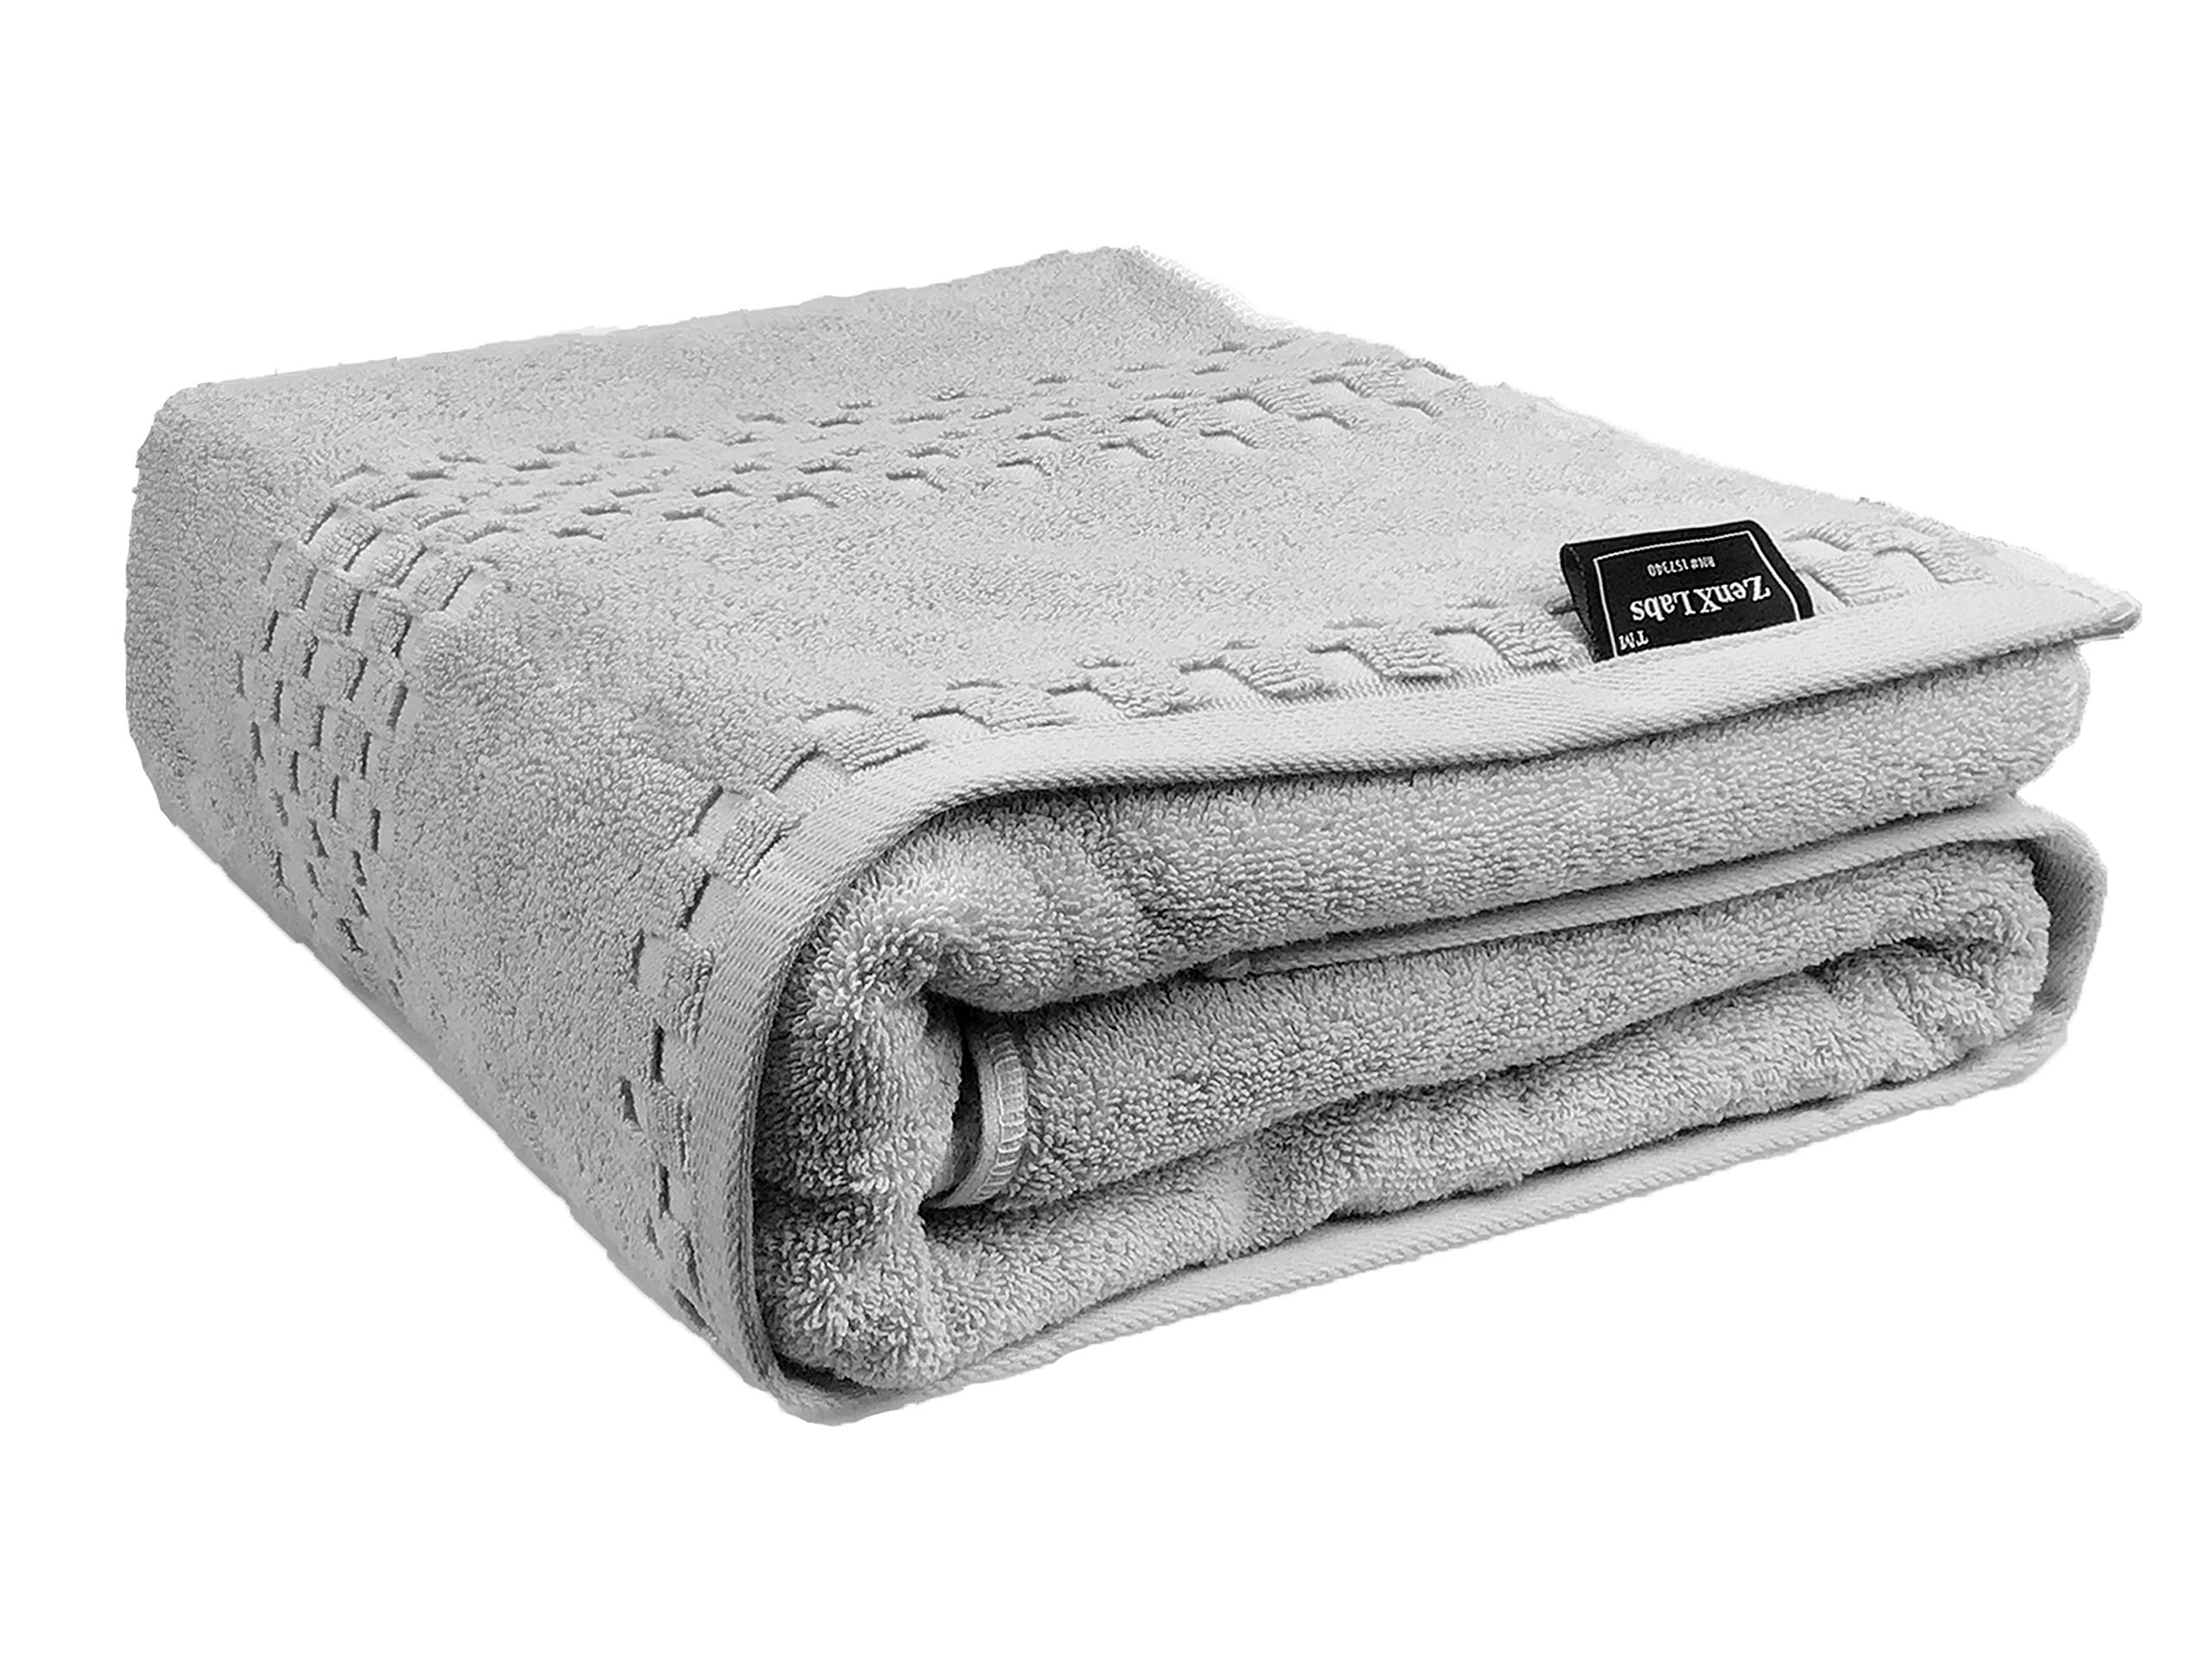 PackALL ZenXLabs Over 1000 GSM 100% Turkish Cotton Bath Sheets Towels Set Gray (36 x 71 Inch) - Extra Large Extra Thick Extra Soft & Extra Absorbent